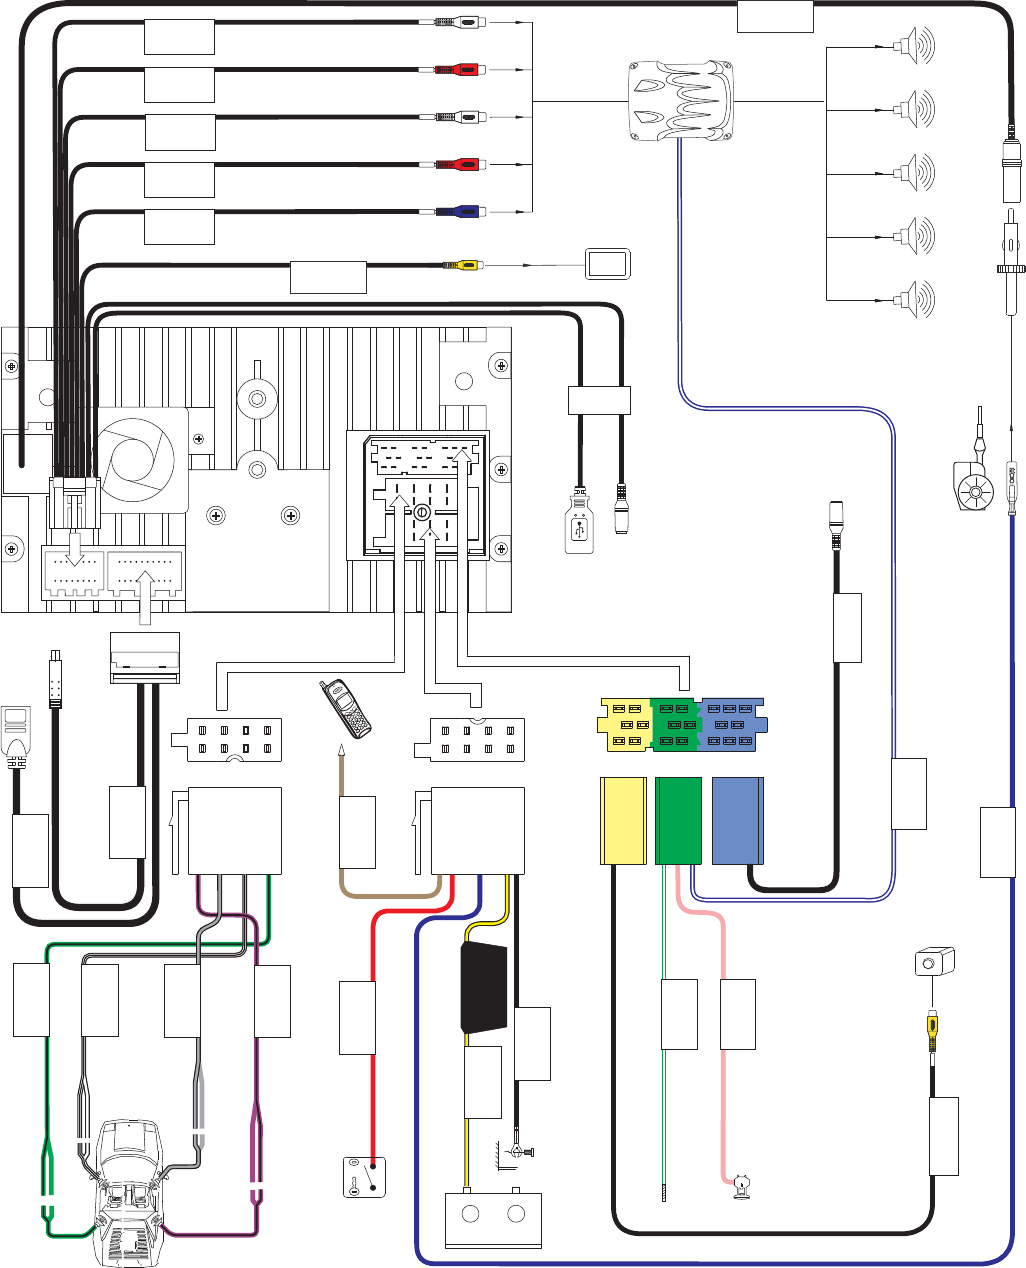 34fbcac4 7bef 4eb8 b34c 690a937048d0 bg4 jensen wiring diagram jensen vm9215bt update \u2022 wiring diagrams j car tft lcd monitor wiring diagram at alyssarenee.co